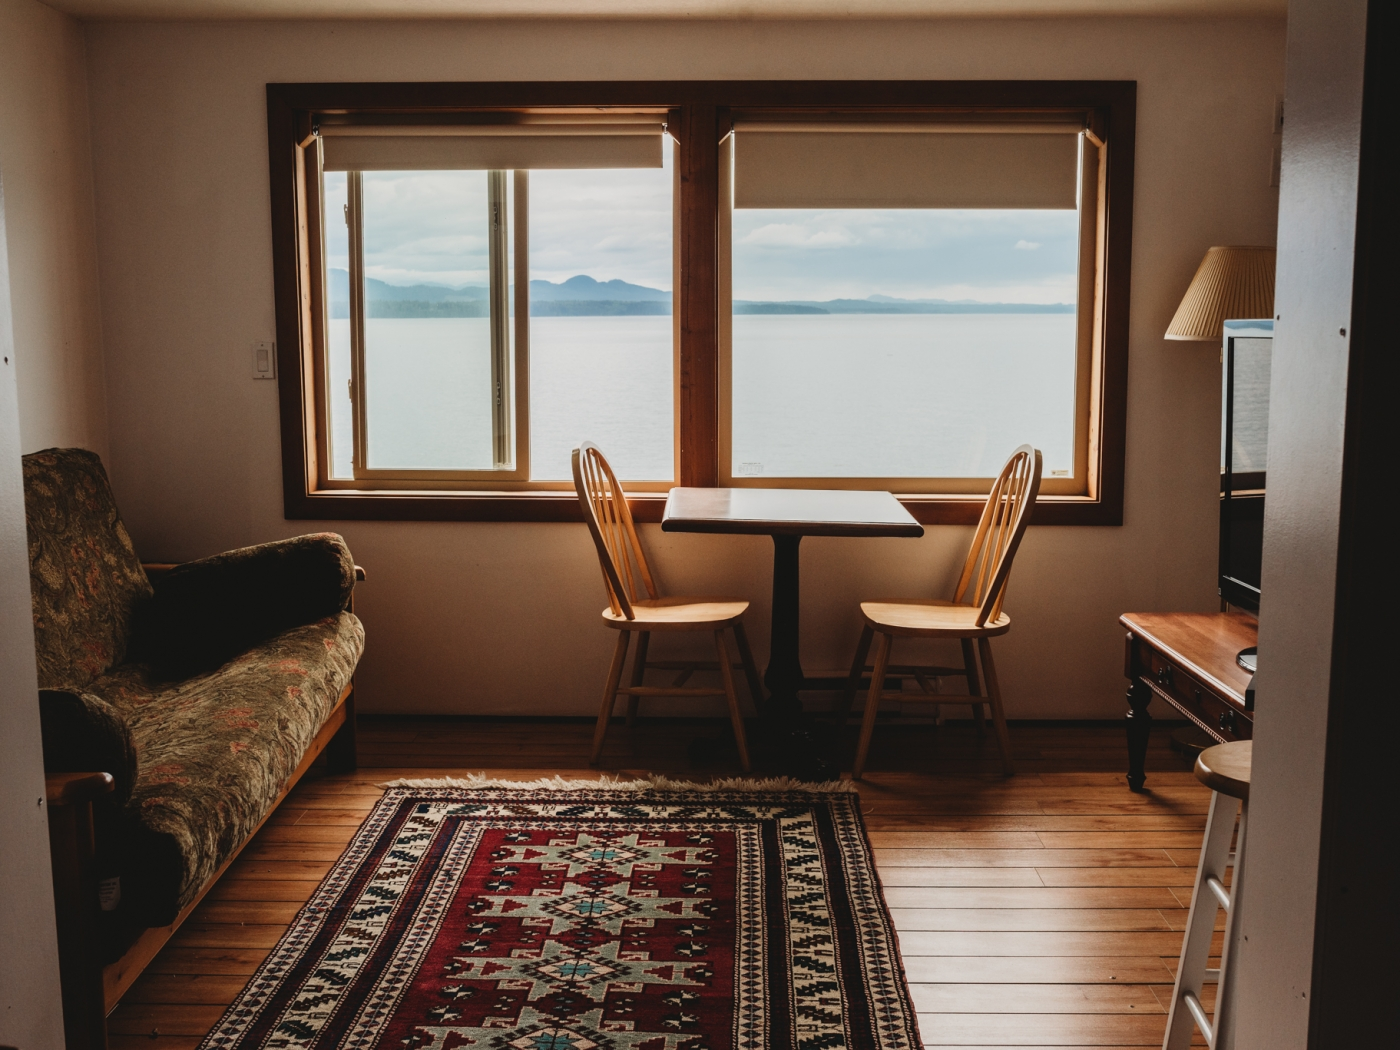 The Oceanfront Hotel is a business for sale in BC.